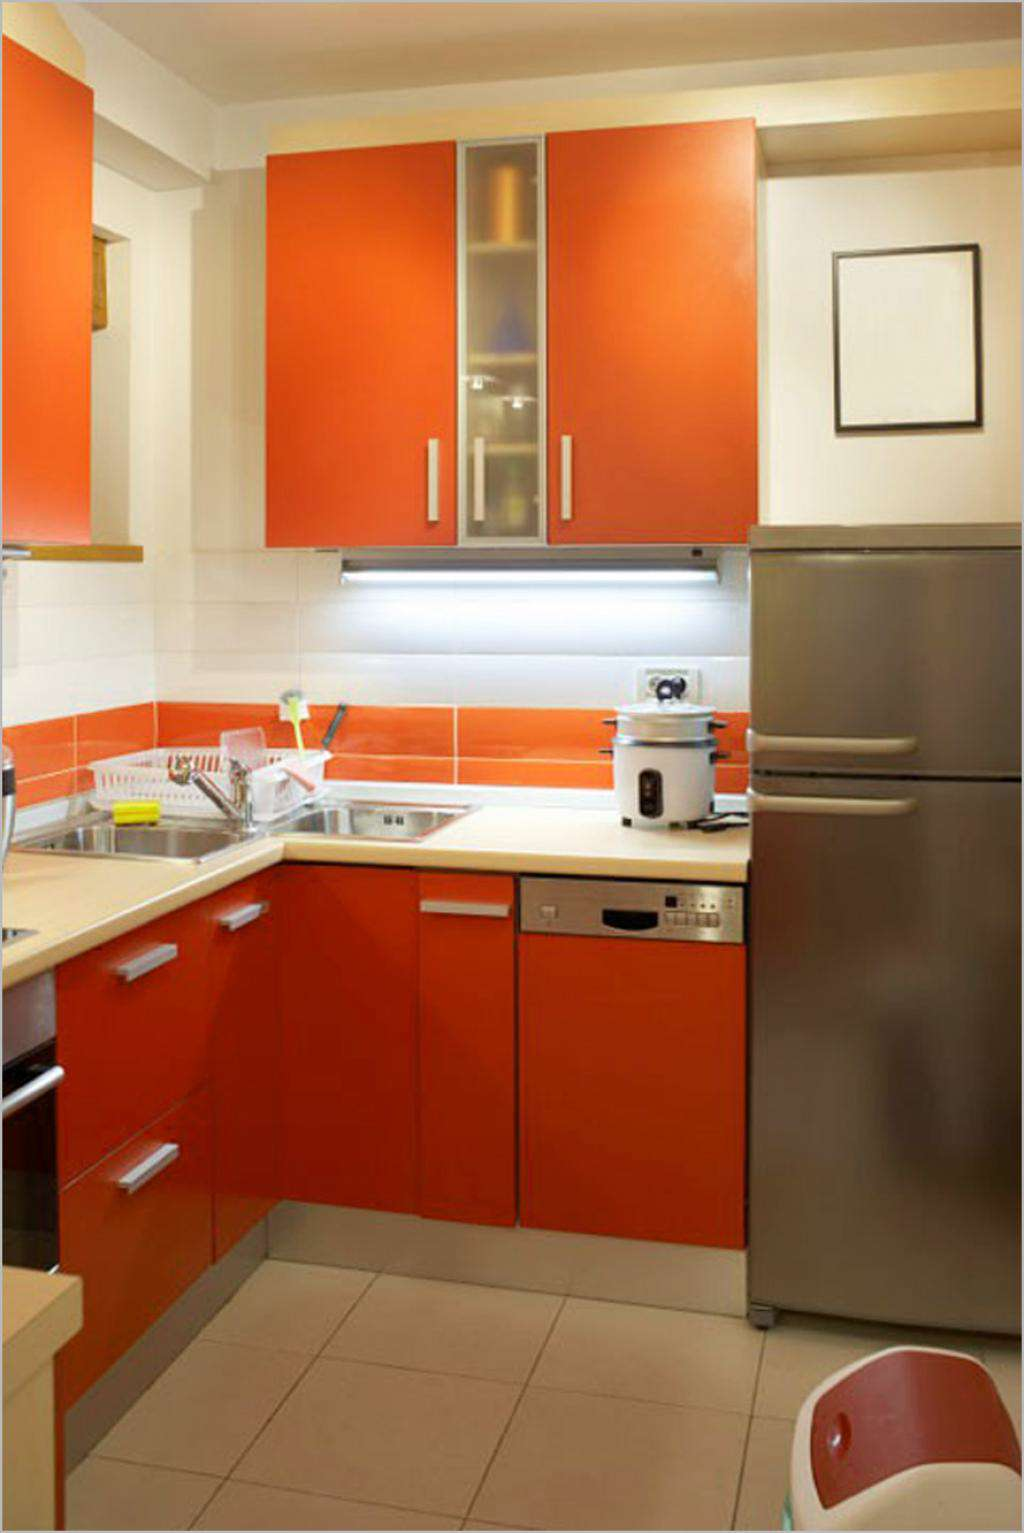 small kitchen units ideas image 08